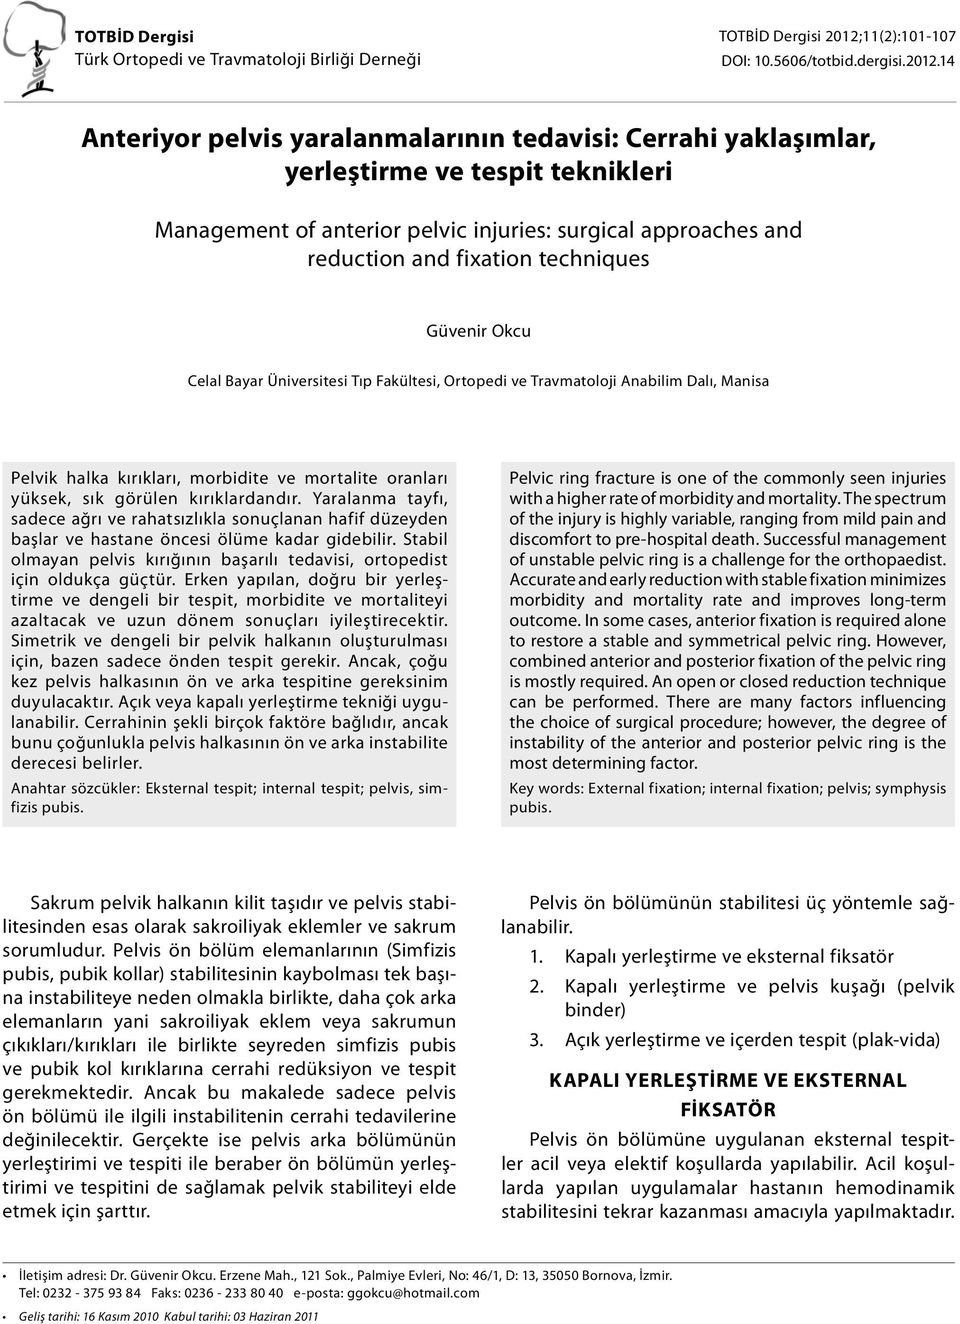 14 Anteriyor pelvis yaralanmalarının tedavisi: Cerrahi yaklaşımlar, yerleştirme ve tespit teknikleri Management of anterior pelvic injuries: surgical approaches and reduction and fixation techniques